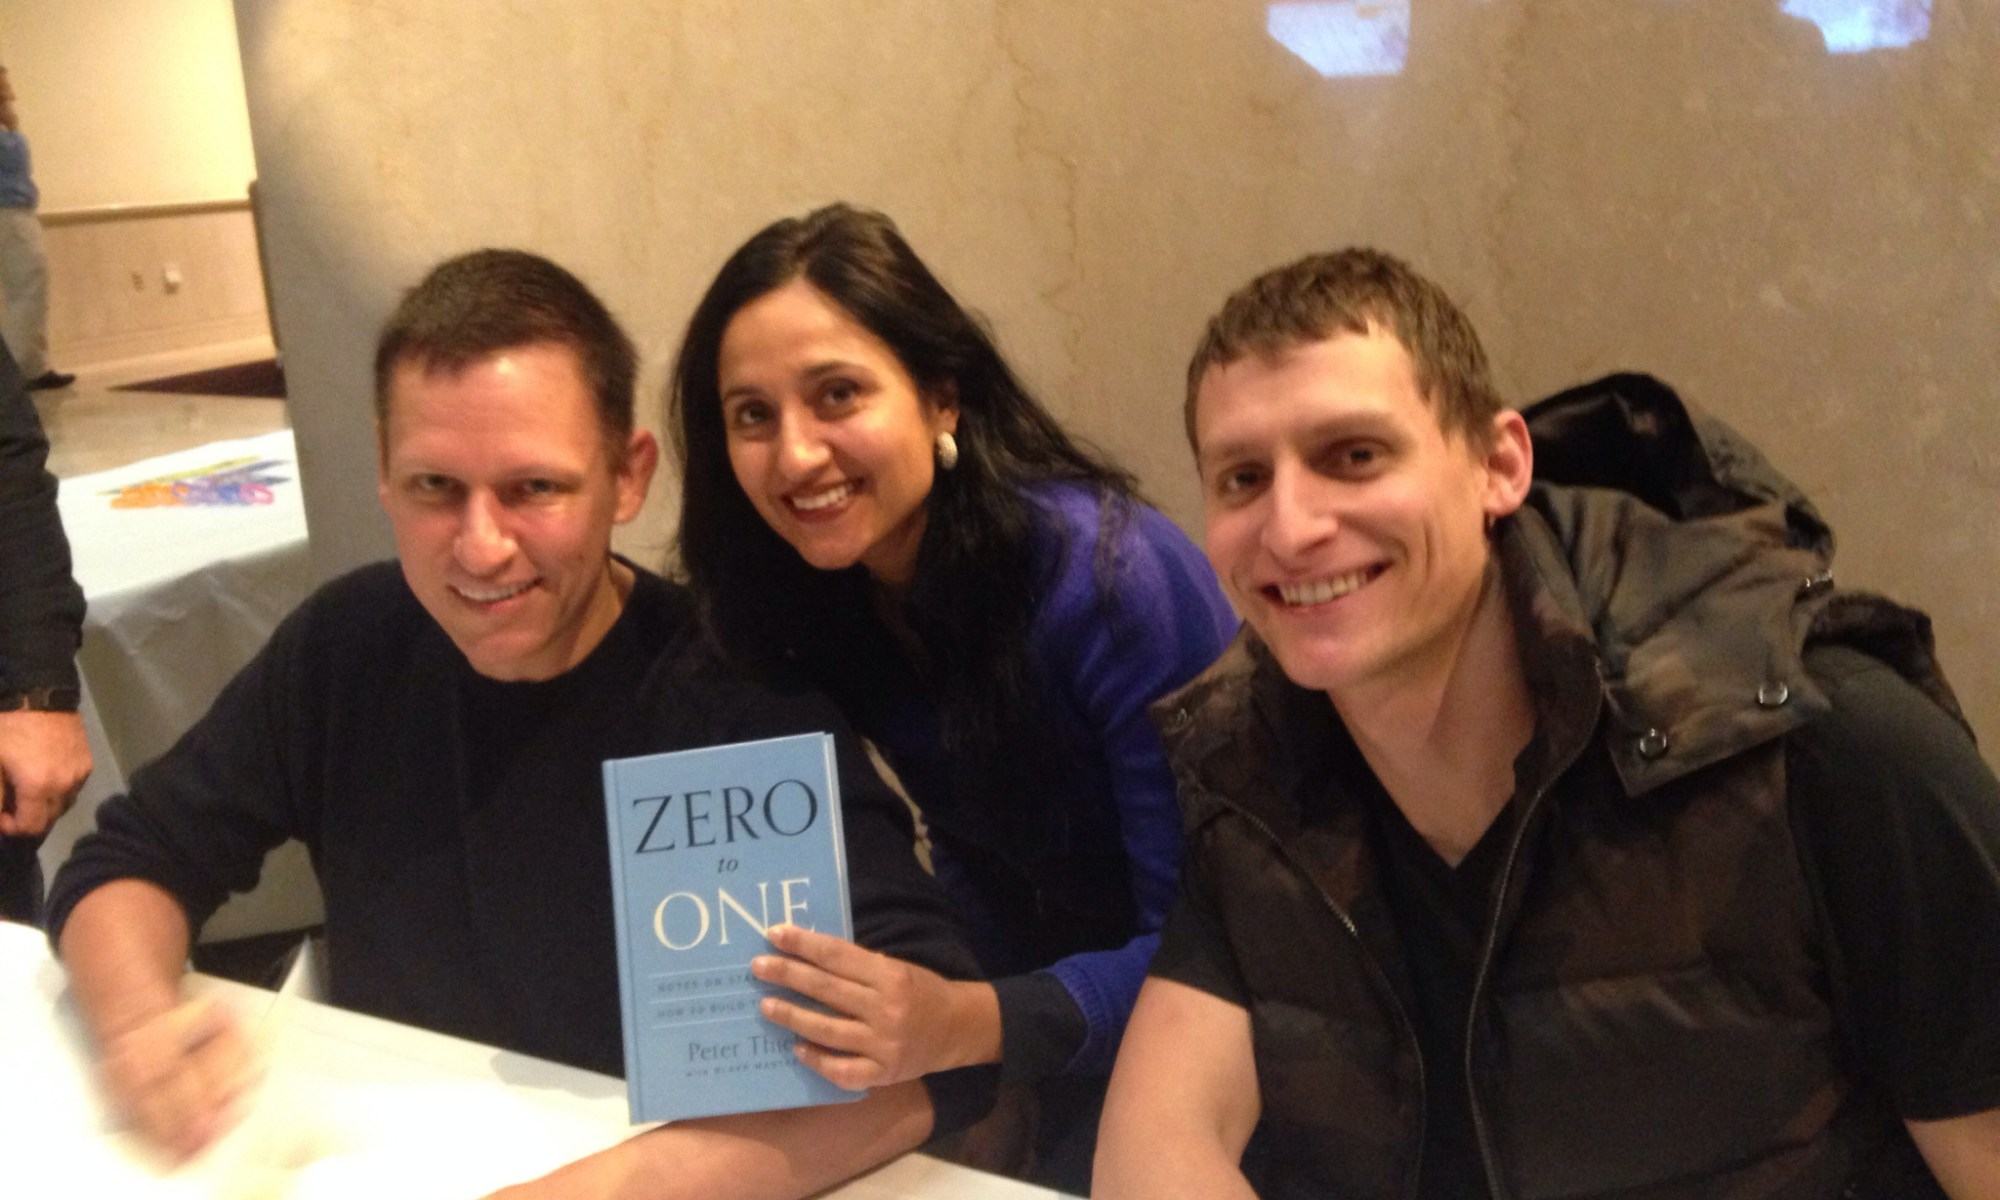 Peter Thiel Co-Founder of Paypal with Bindu Dadlani